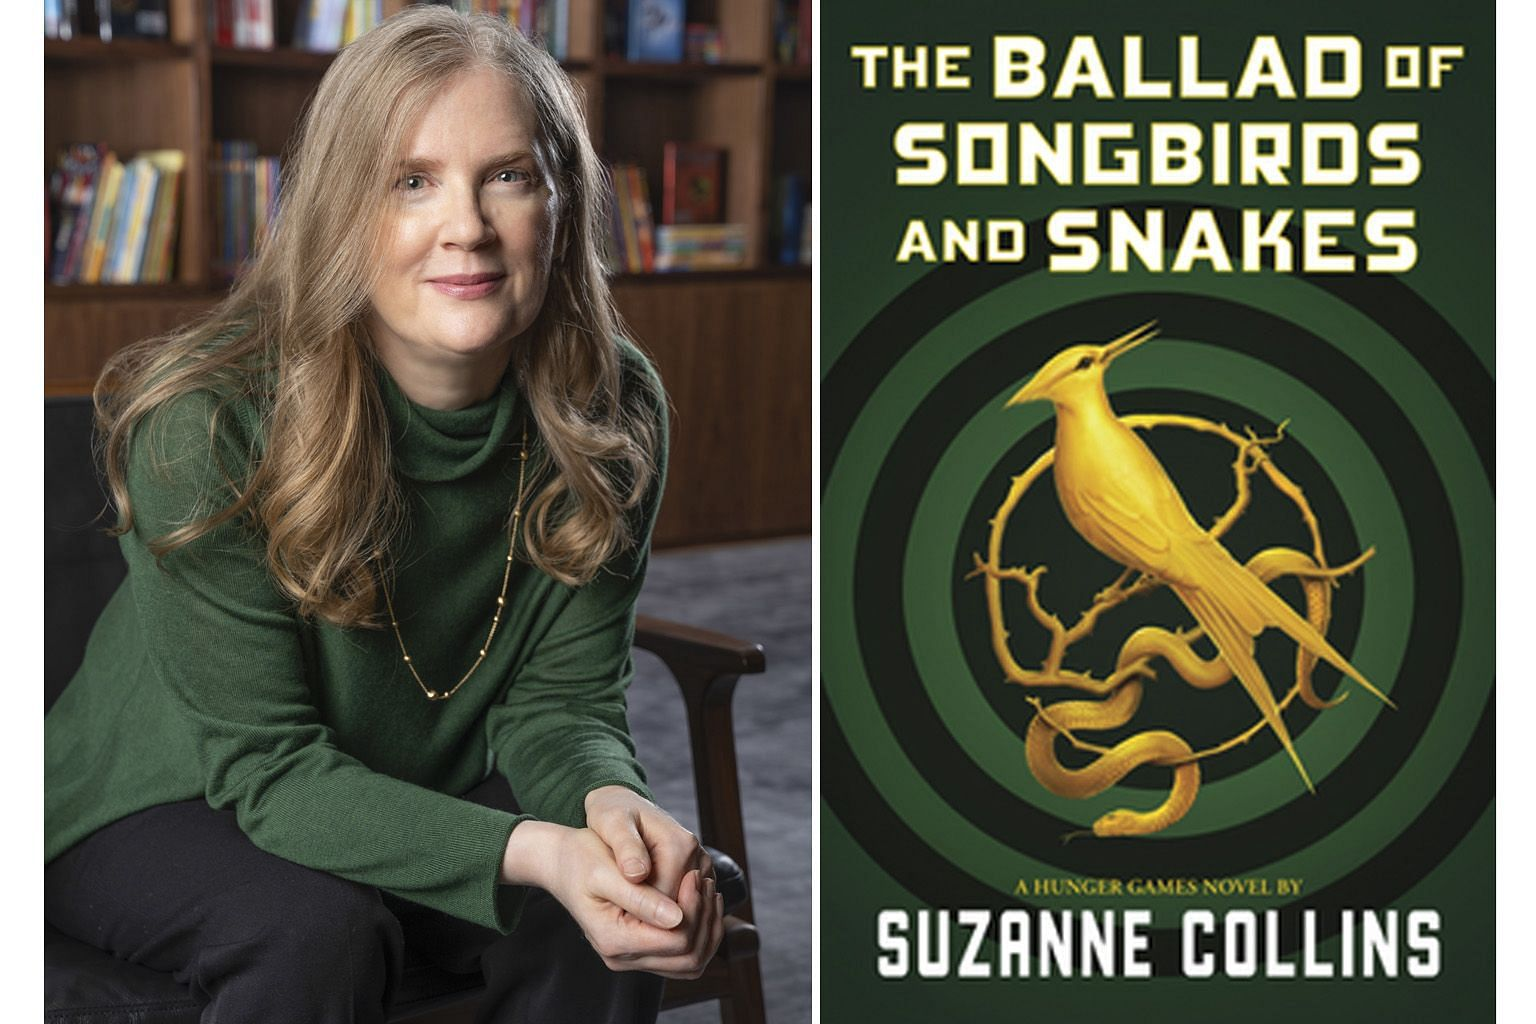 In The Ballad Of Songbirds And Snakes (above) by Suzanne Collins (left), Coriolanus Snow is a teenage Machiavelli in dire straits.